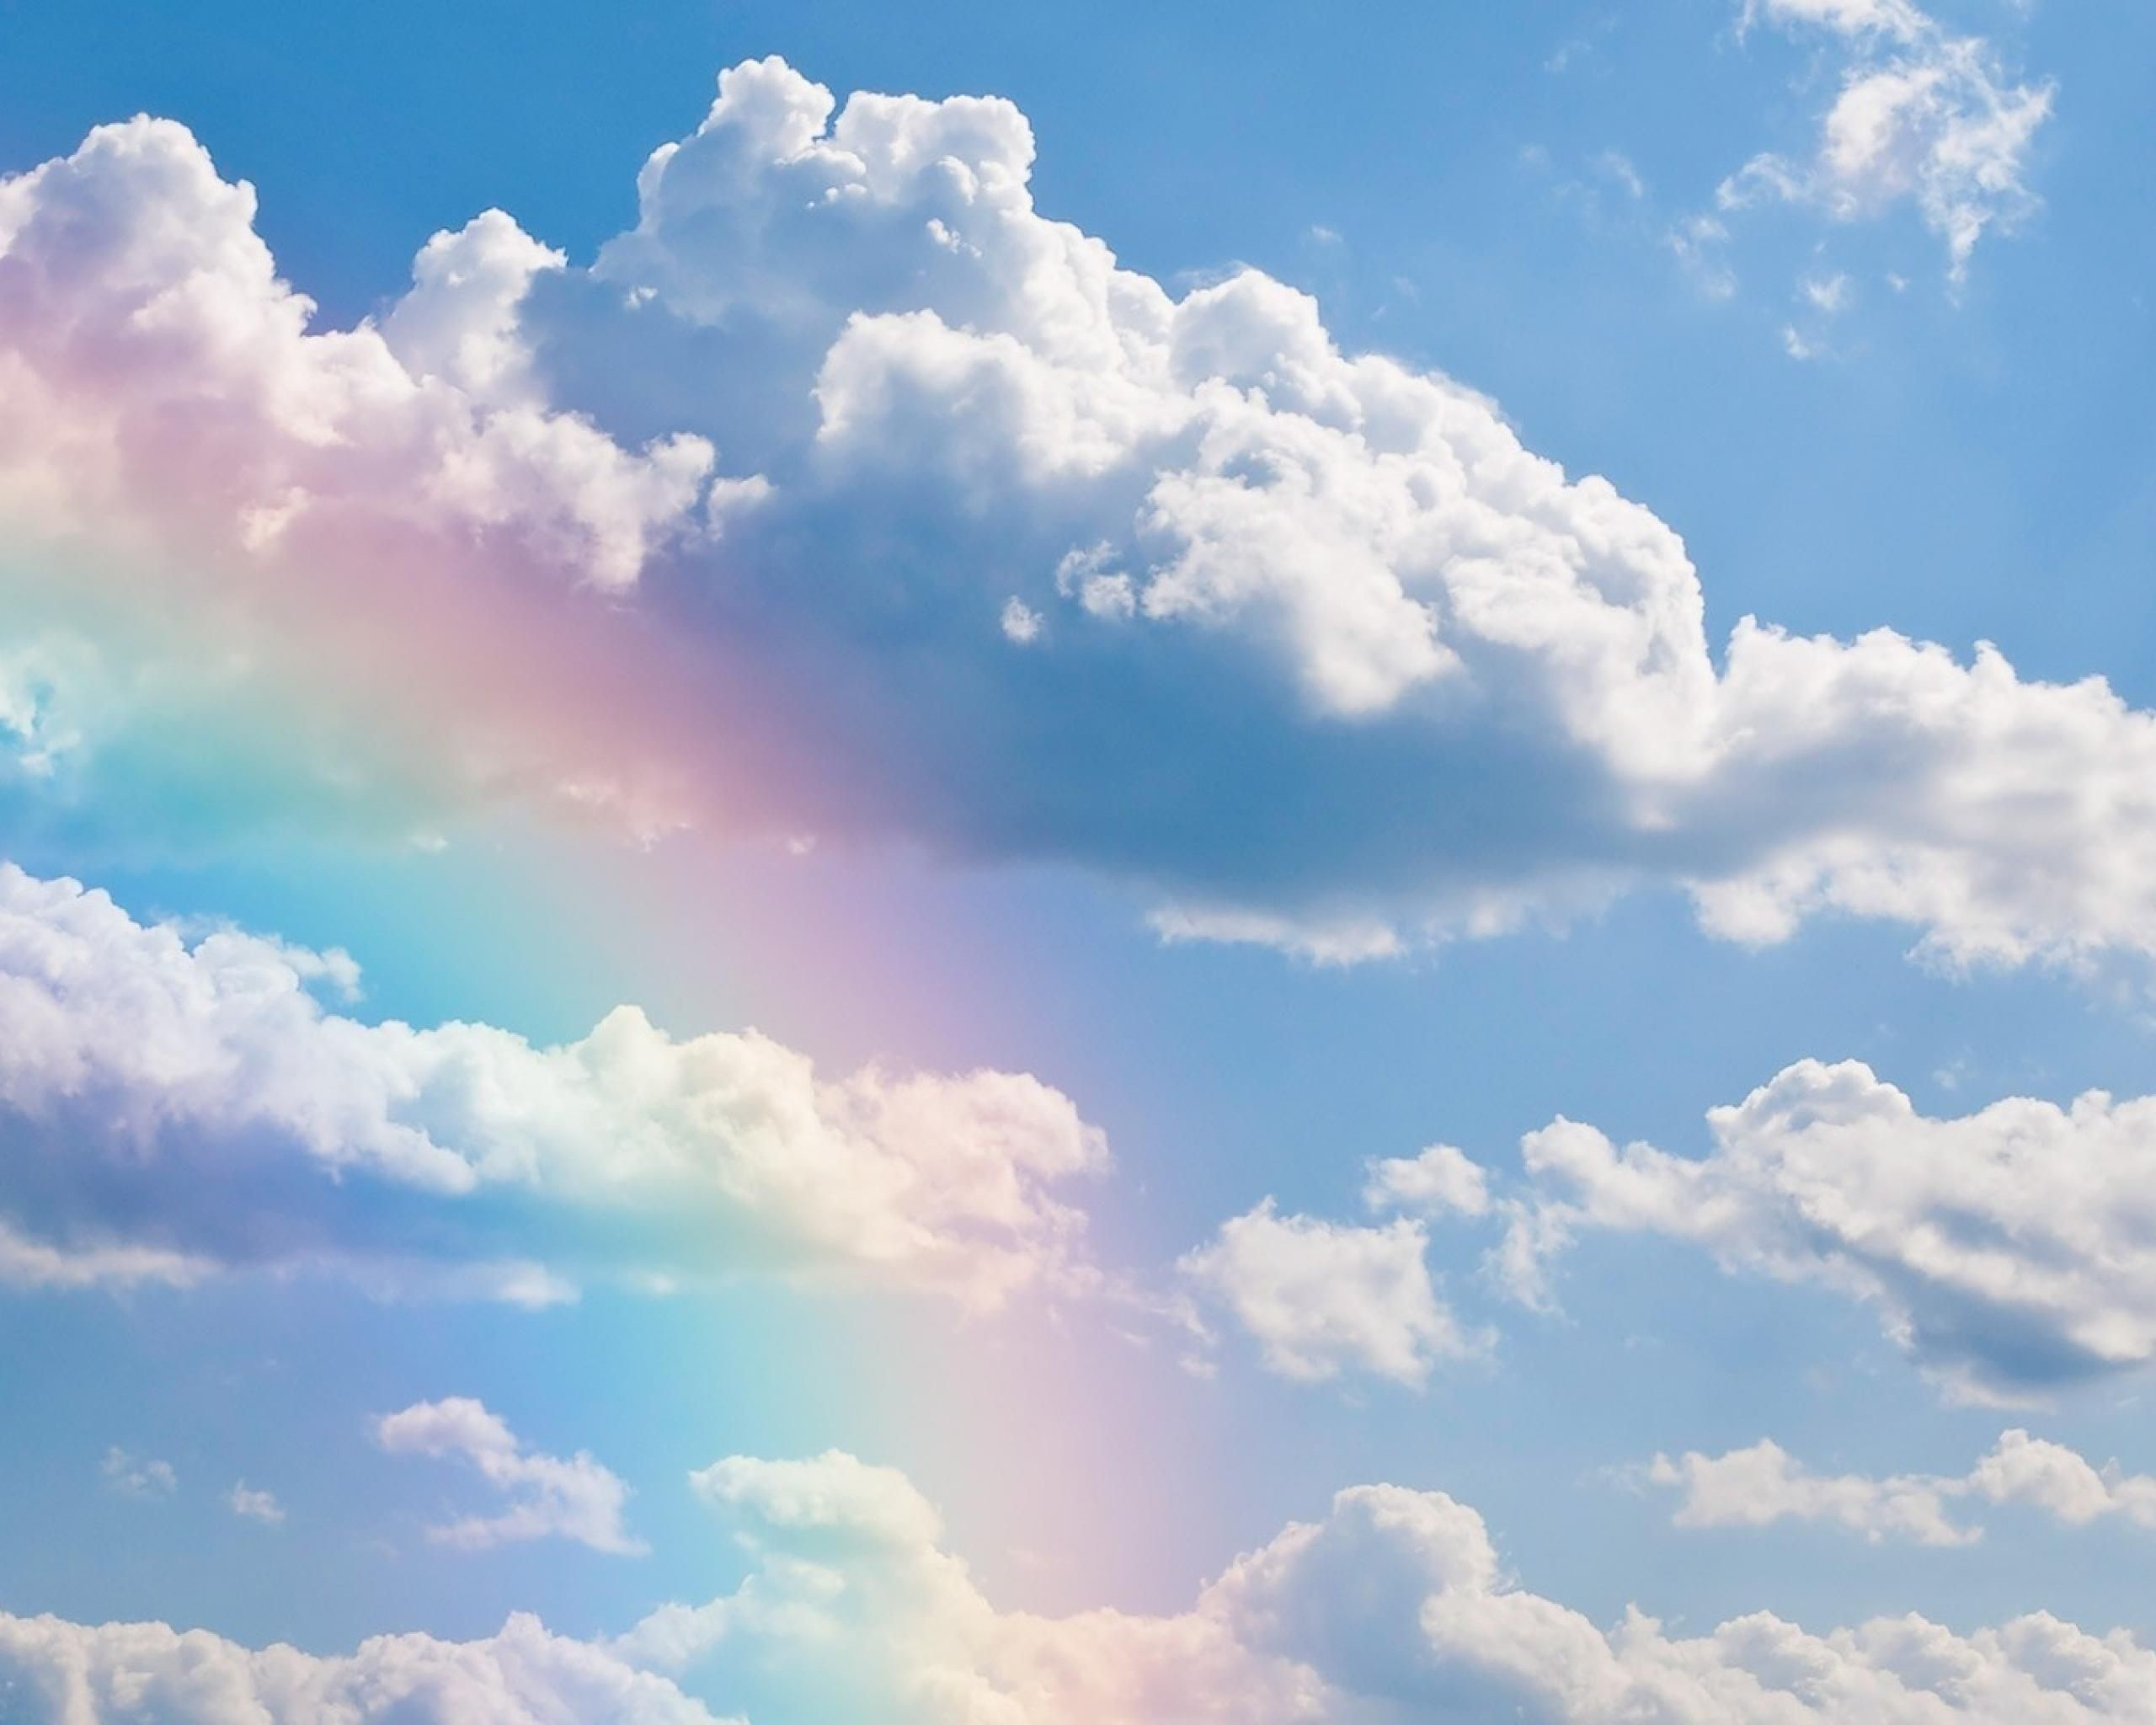 Res: 2560x2048, Rainbows | Rainbows Clouds Sky Rainbow Nature Free Hd Wallpaper with   .